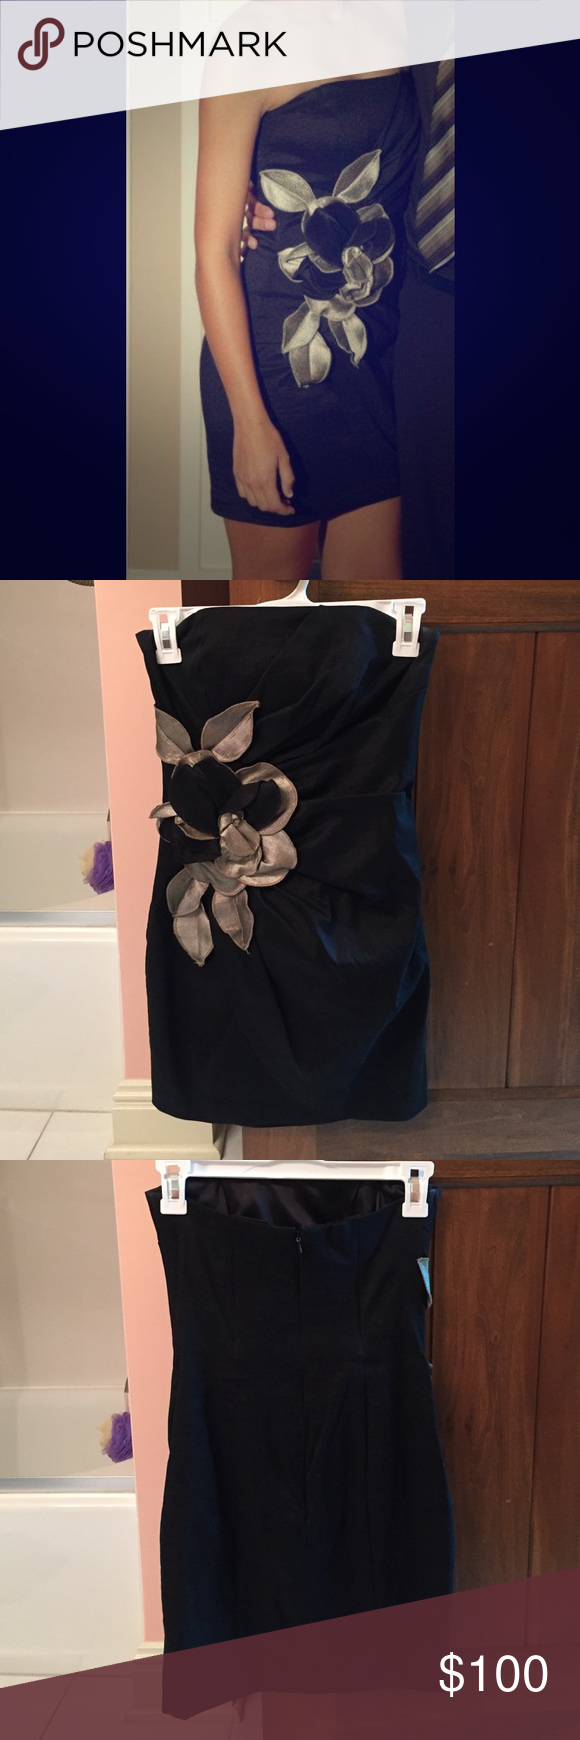 JESSICA McCLINTOCK PARTY DRESS Jessica McClintock dress worn only once, and in perfect condition! Worn to 2010 homecoming ☺️ size four, I would say runs a little bit small. Very beautiful and classy! Jessica McClintock Dresses Strapless